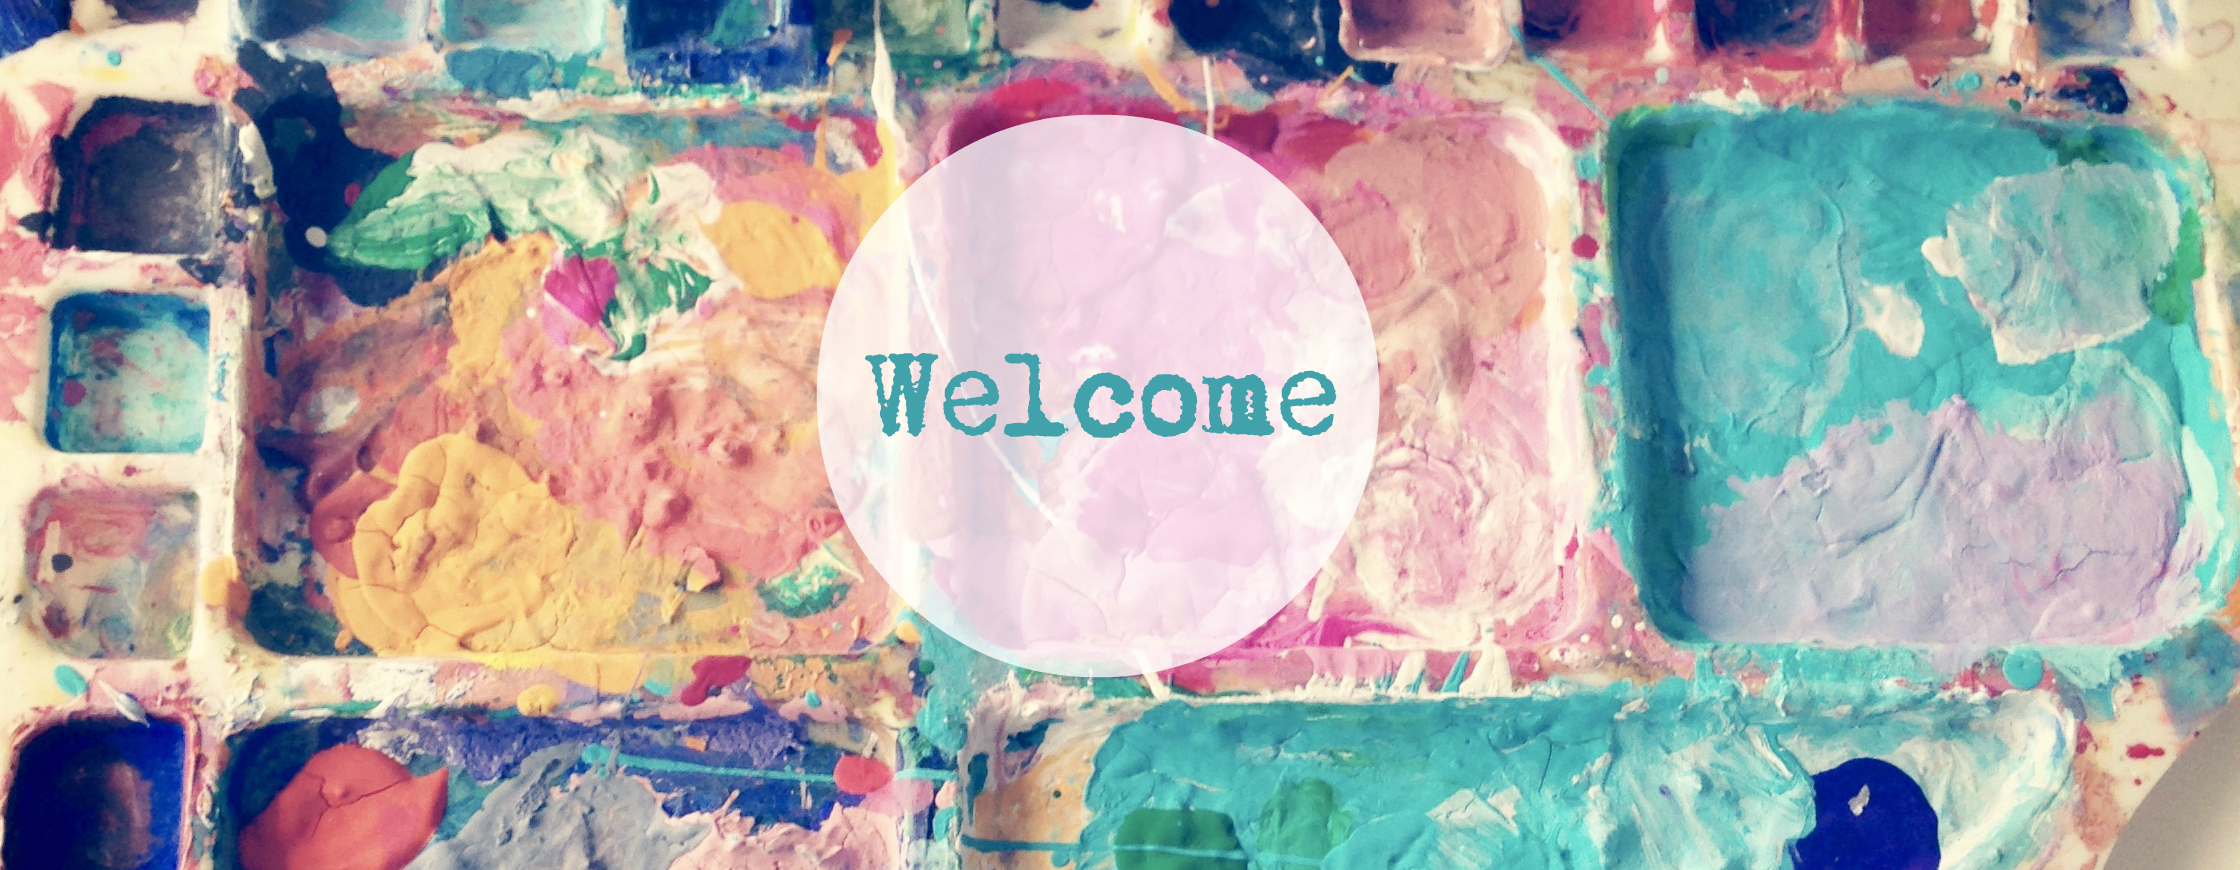 Welcome-paint-pallet-pink-Turq